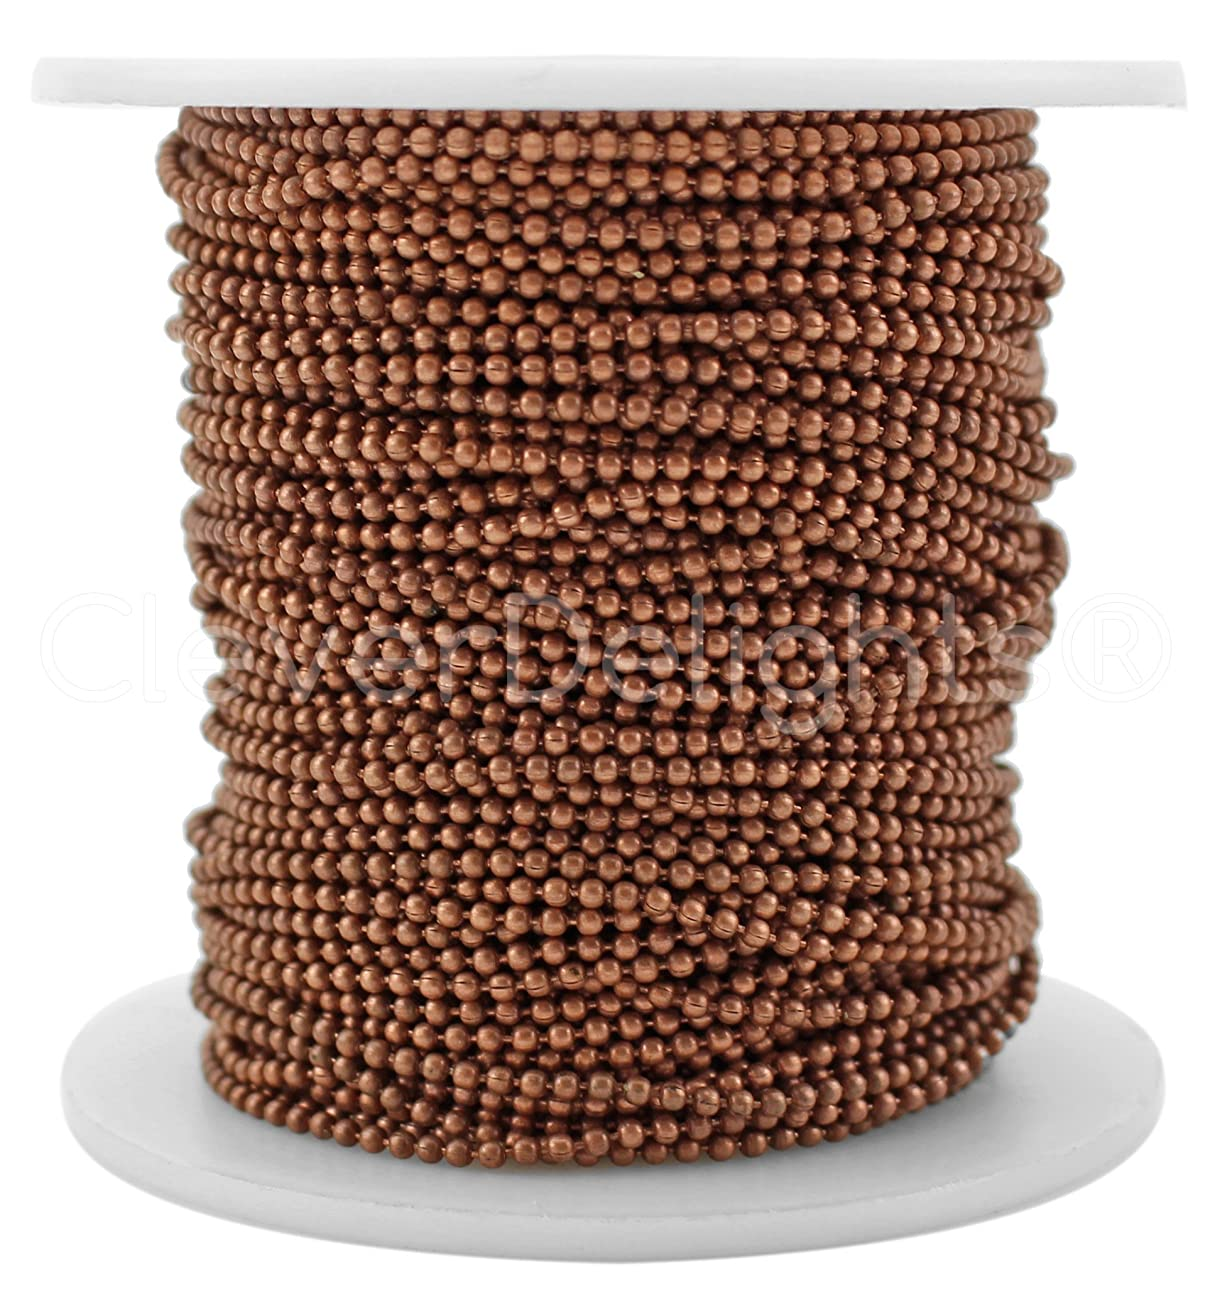 CleverDelights Ball Chain Spool - 30 Feet - 1.5mm Ball (Small) - Antique Copper Color - 10 Meters